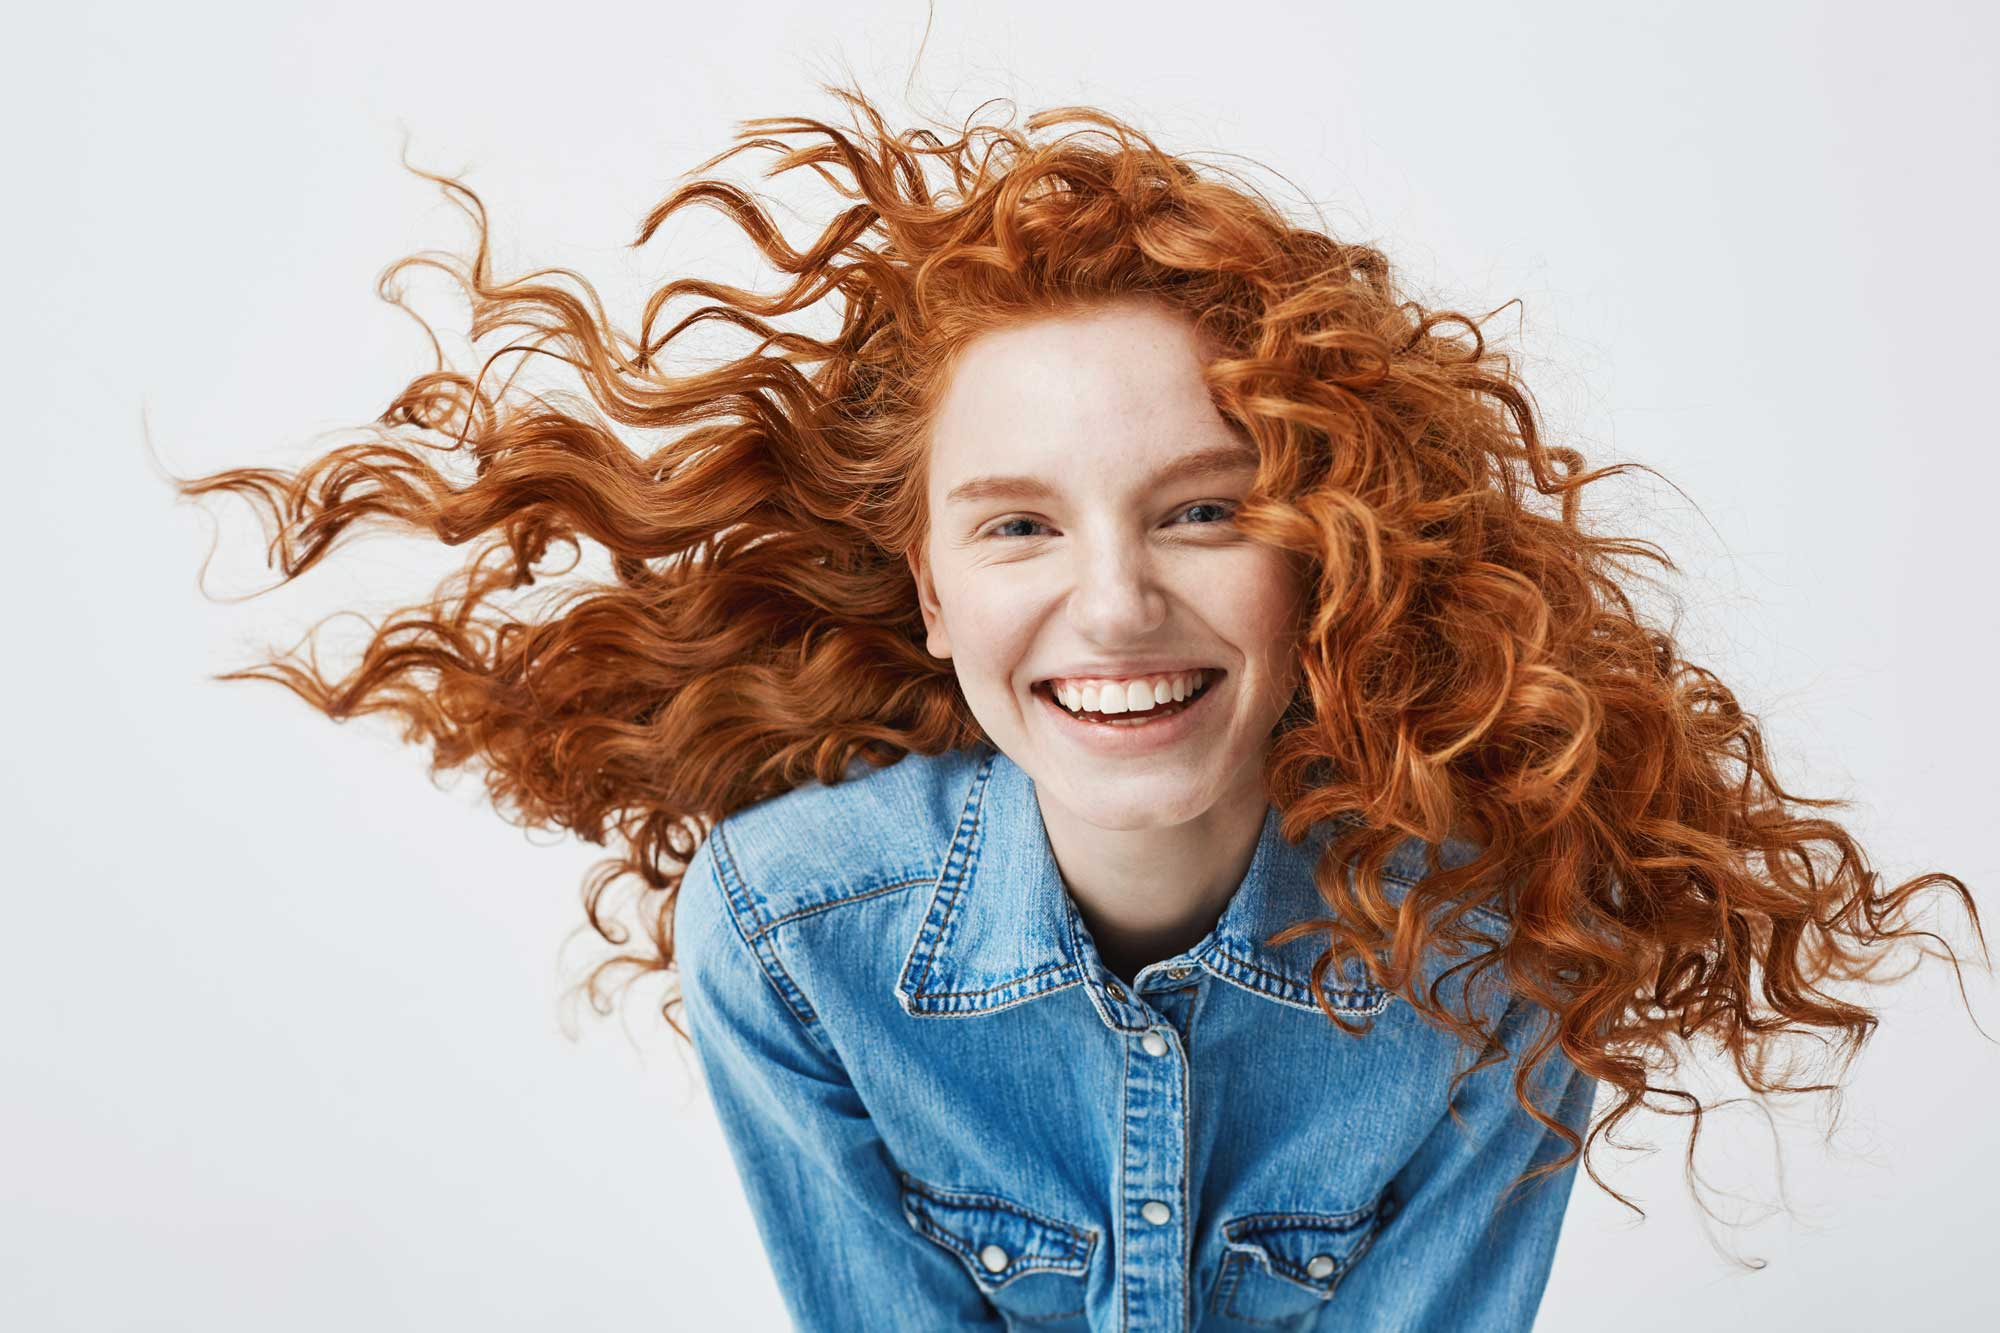 Salon Hair Hair Salon In St Louis And Kansas City Lookafter Hair Company